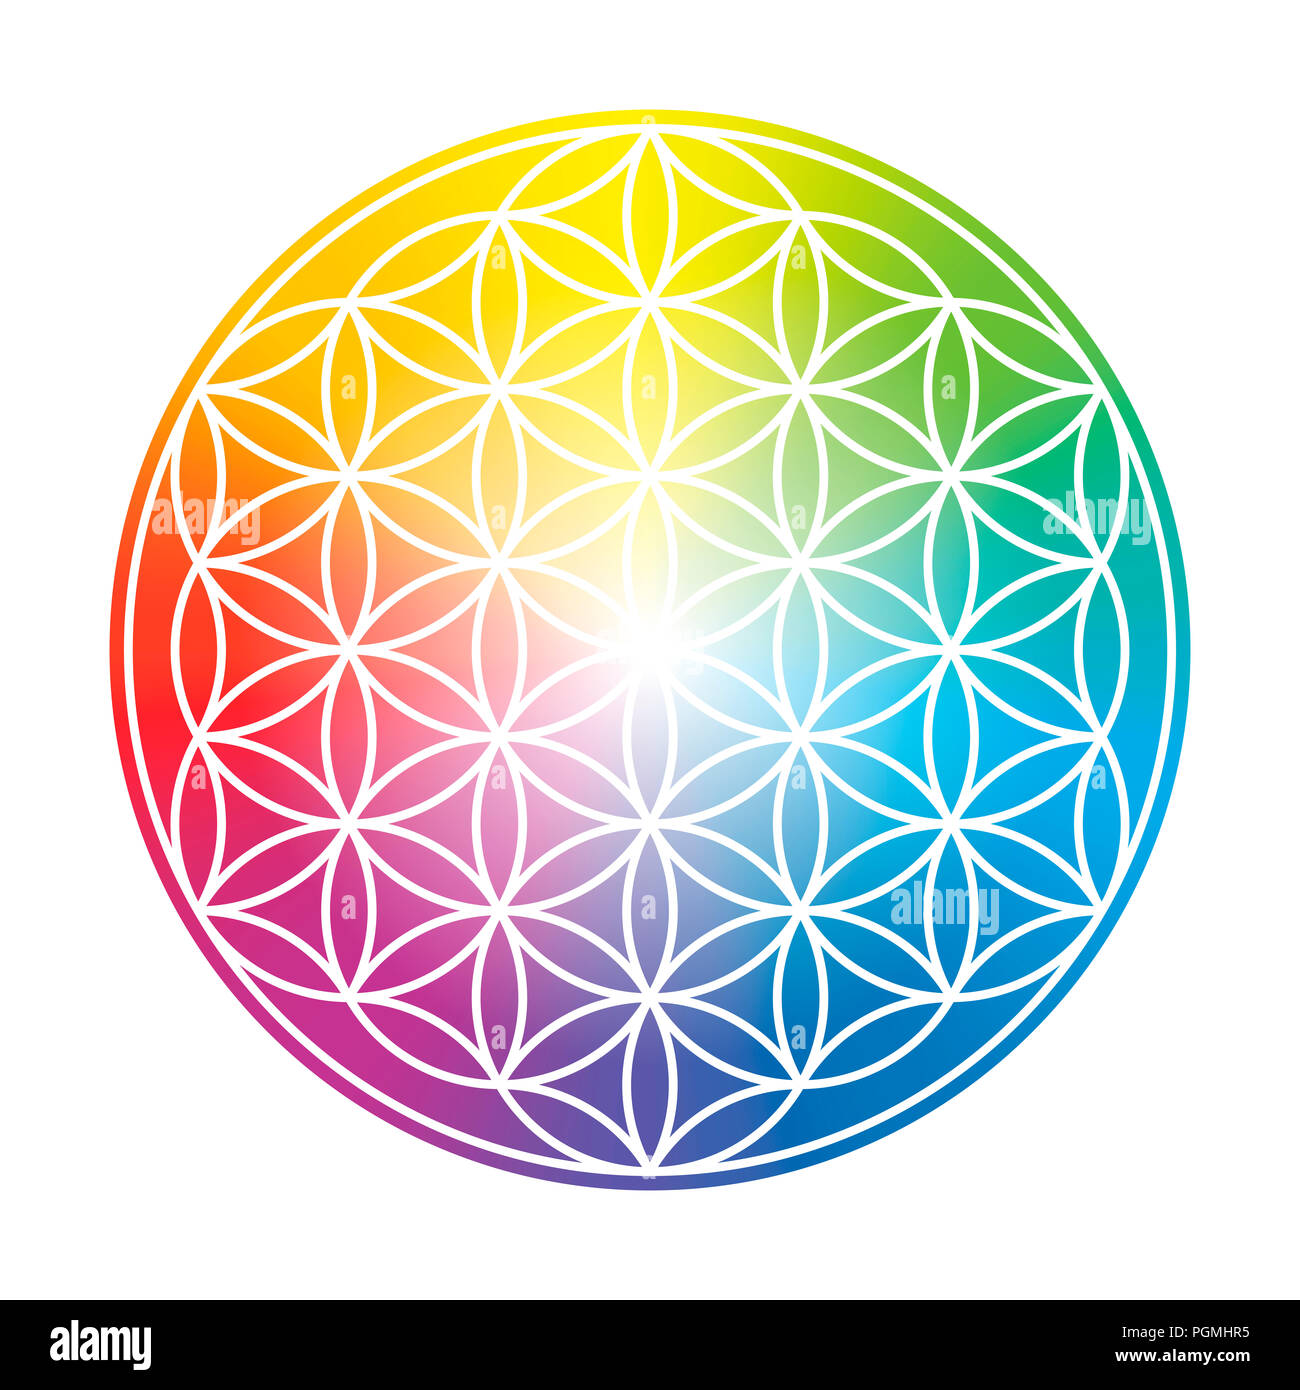 Flower of Life. Colorful circular rainbow gradient symbol on white background. - Stock Image